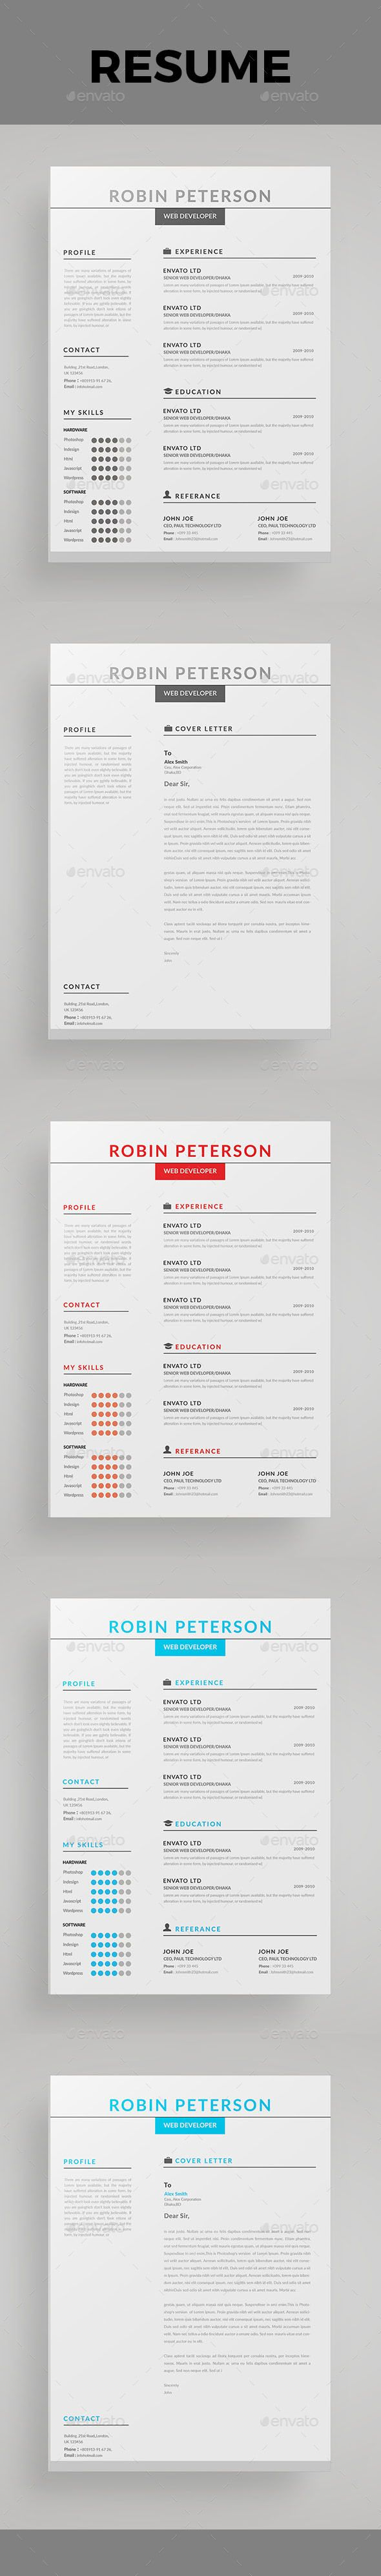 Resume Template PSD, MS Word                                                                                                                                                                                 More